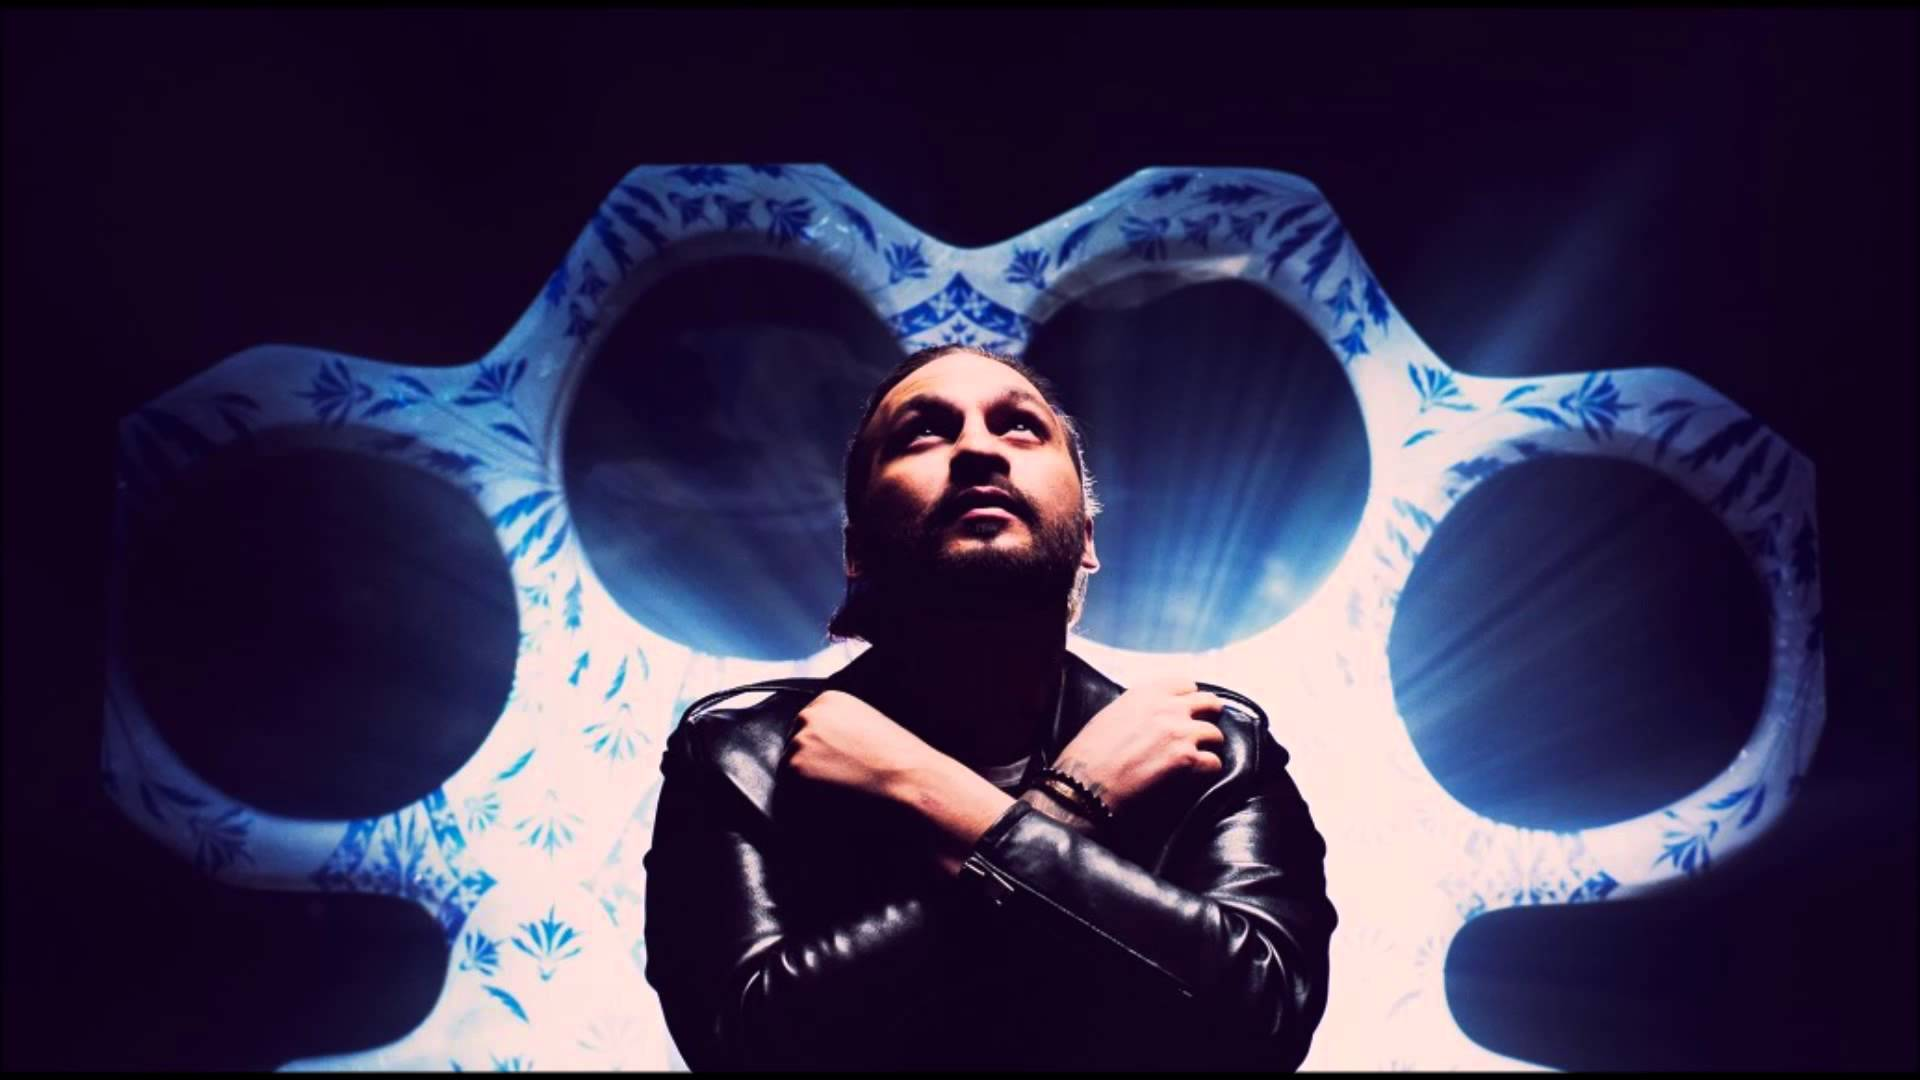 Steve Angello, Saturday, Monday - The Ocean ft. Julia Spada